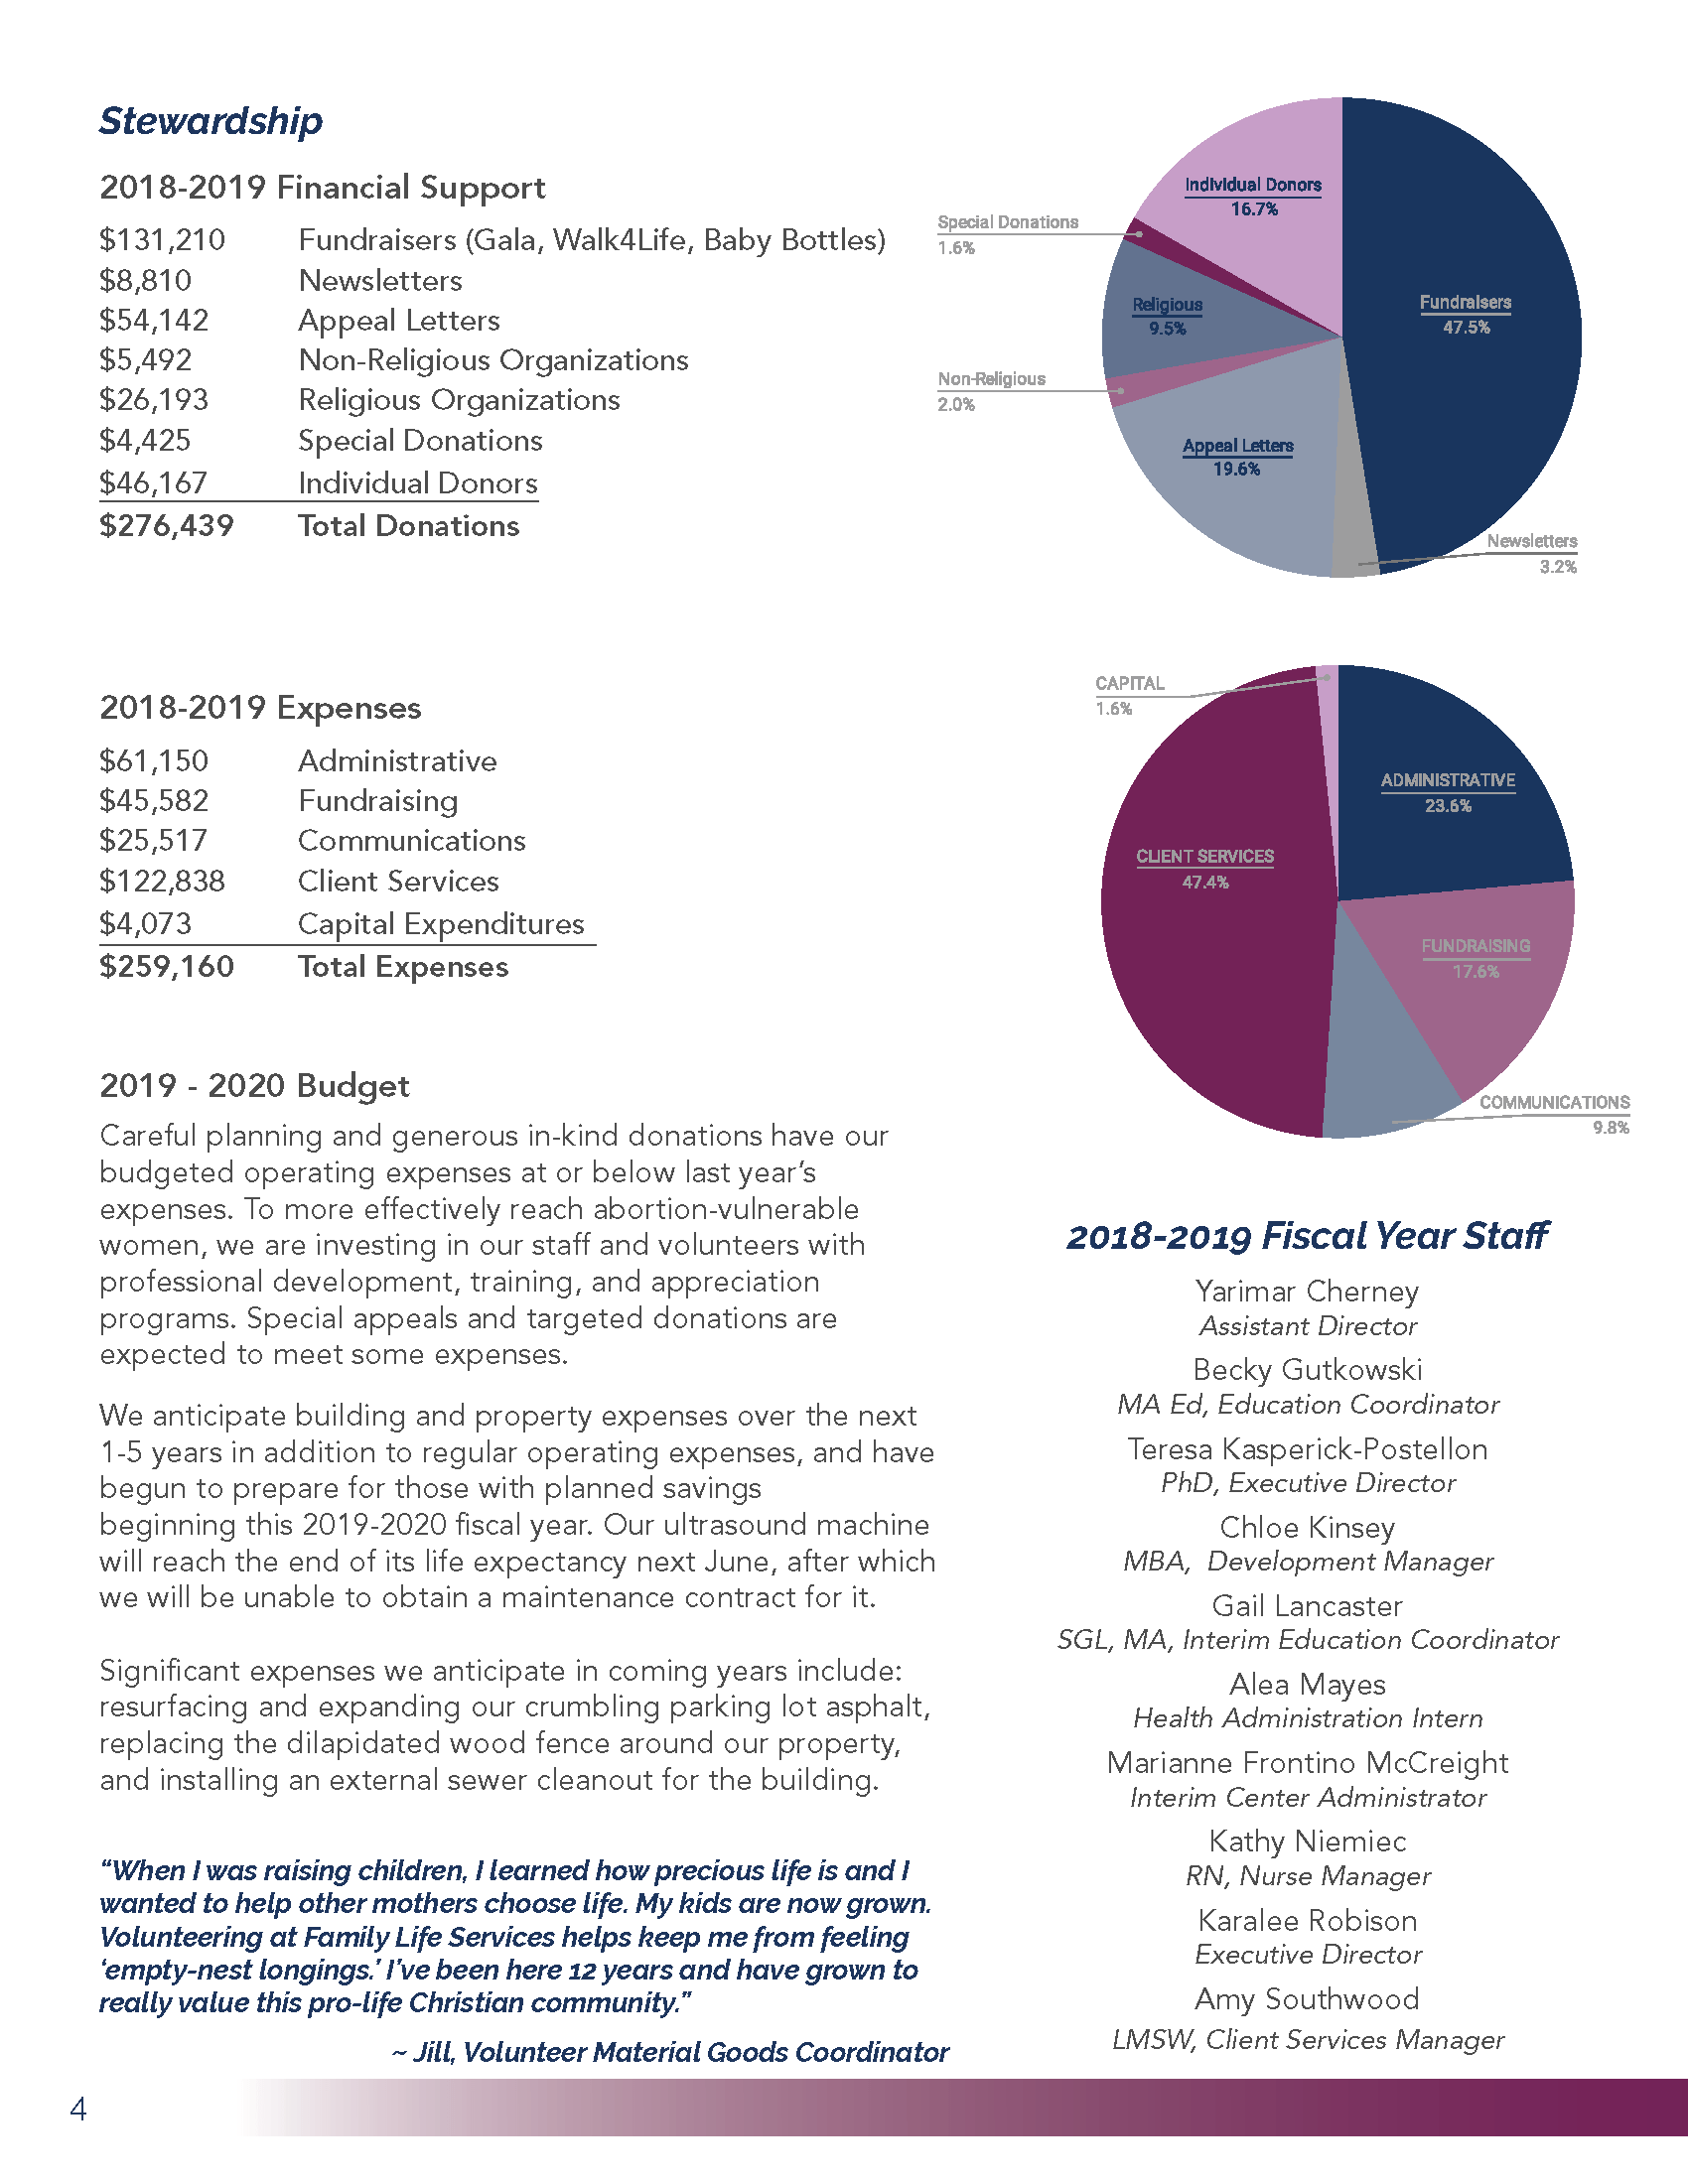 2019 Annual Report Page 4, Stewardship Report, 2019-2020 budget, and list of 2018-2019 staff members